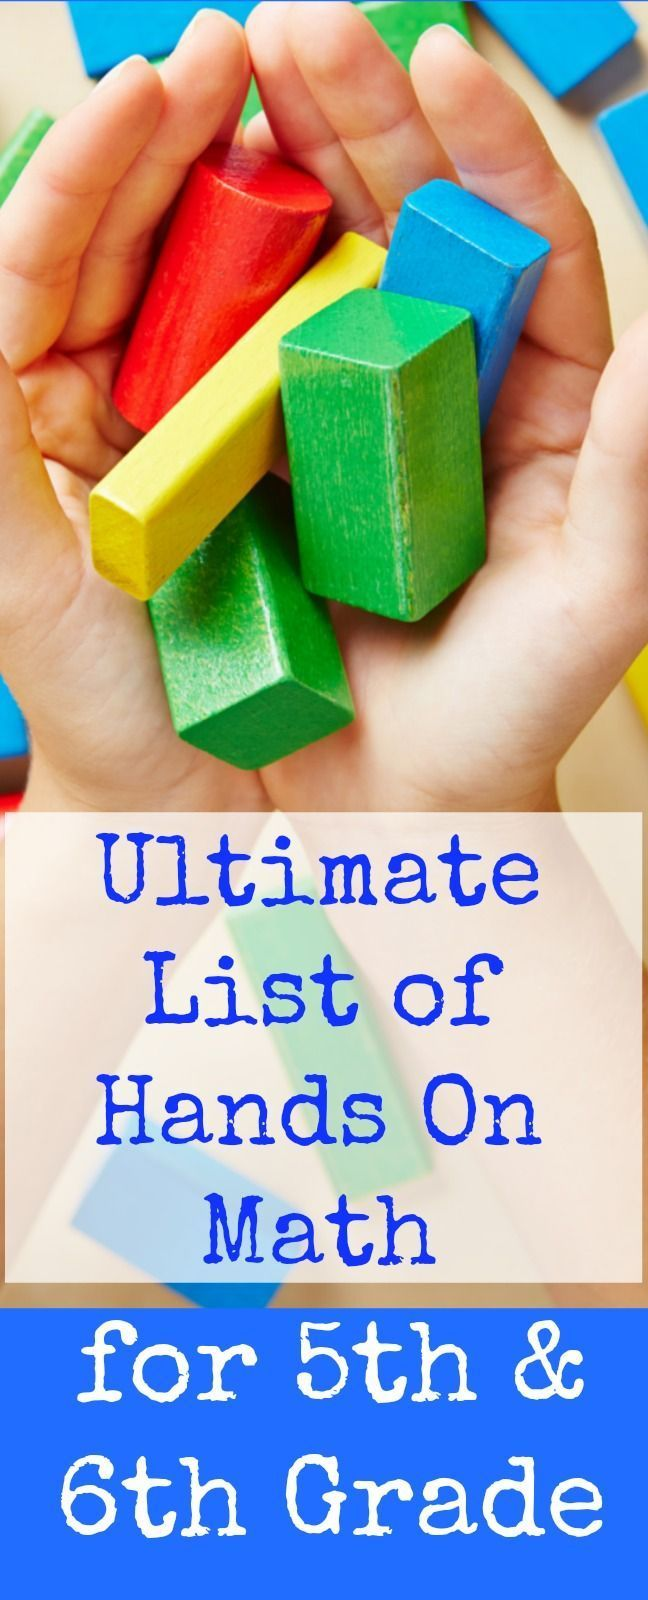 Ultimate list of hands on math for 5th grade and 6th grade. Activities for fractions, decimals, geometry, metric system conversion, integers, pi, and more. | Creekside Learning #mathgames